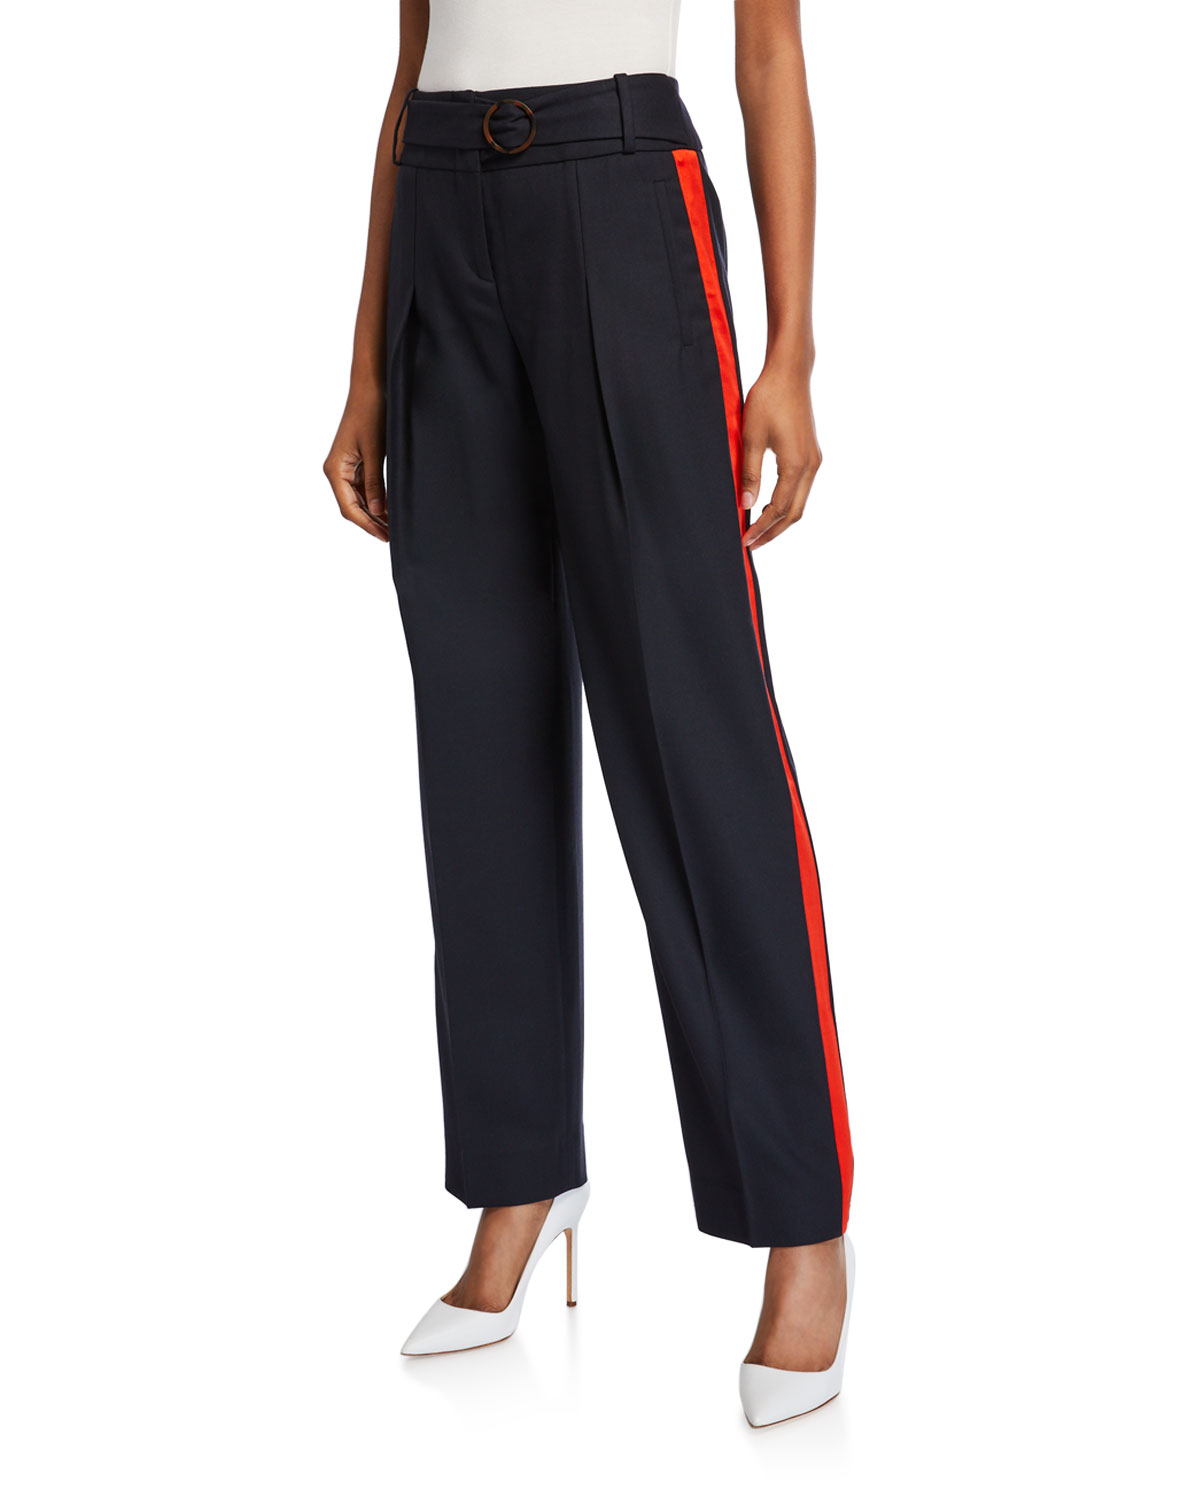 Victoria Victoria Beckham Pants SIDE-STRIPED BELTED TROUSERS